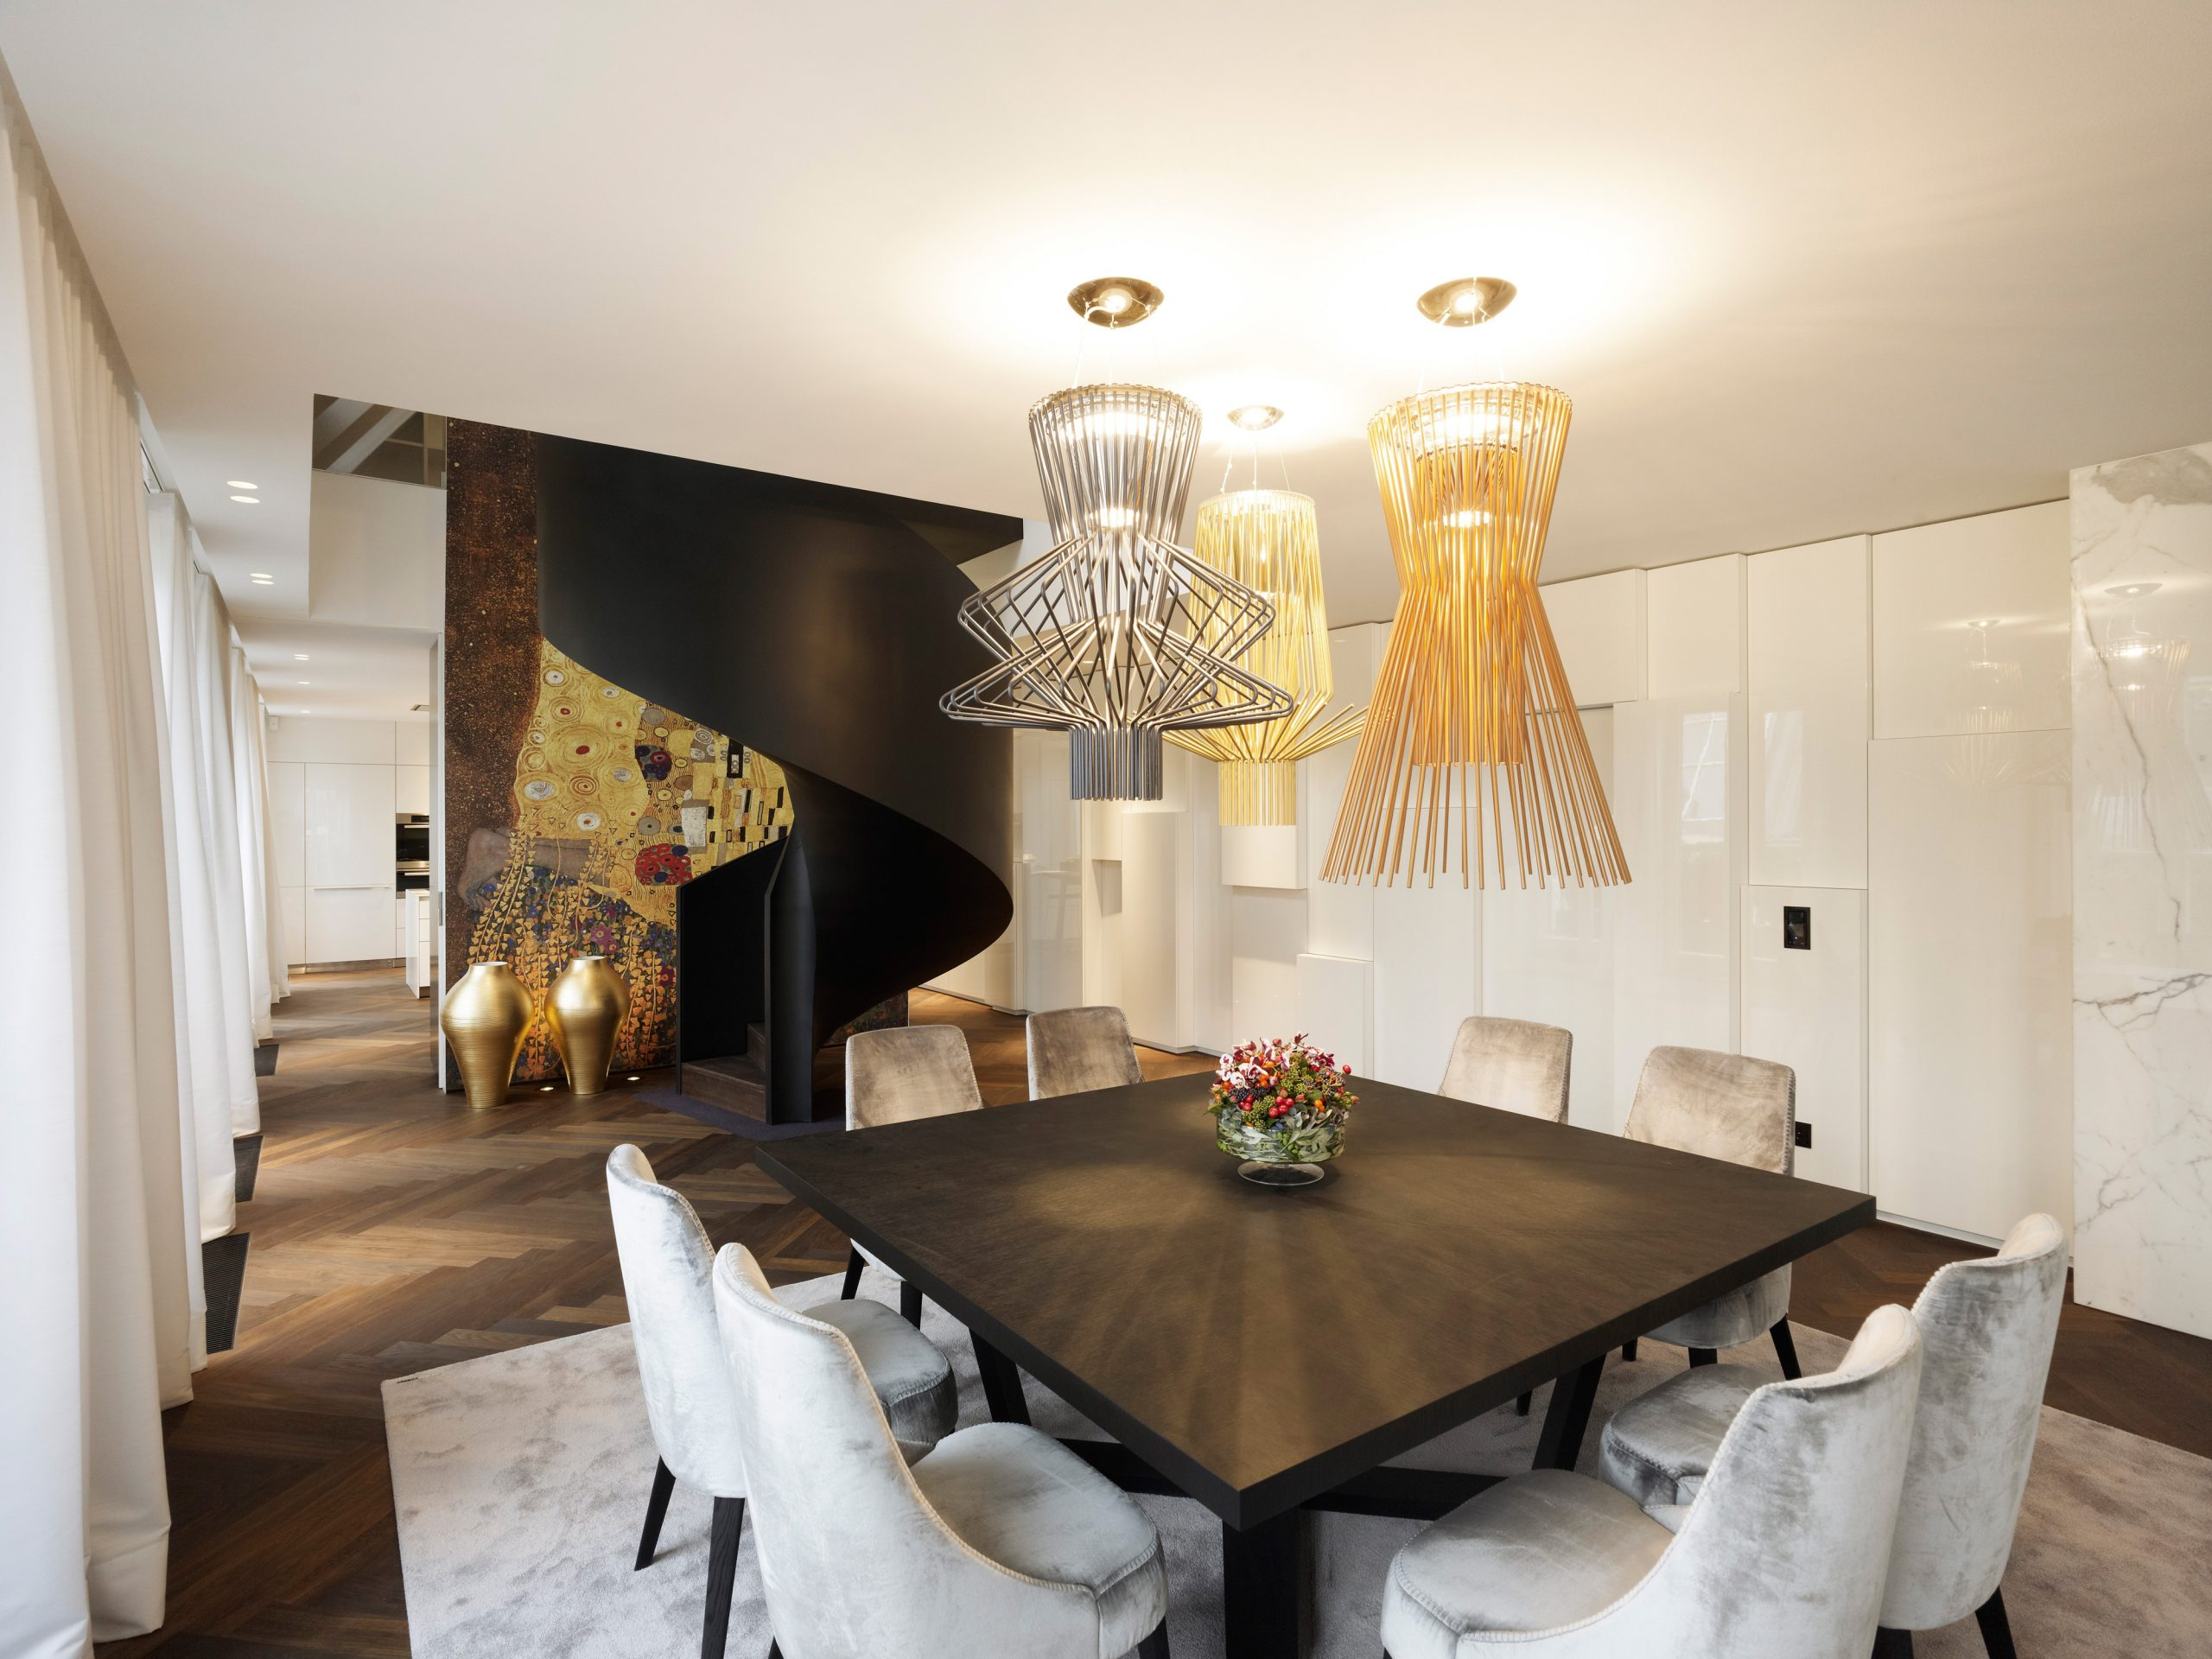 Landau +Kinderbacher From Germany with the best interior design 4